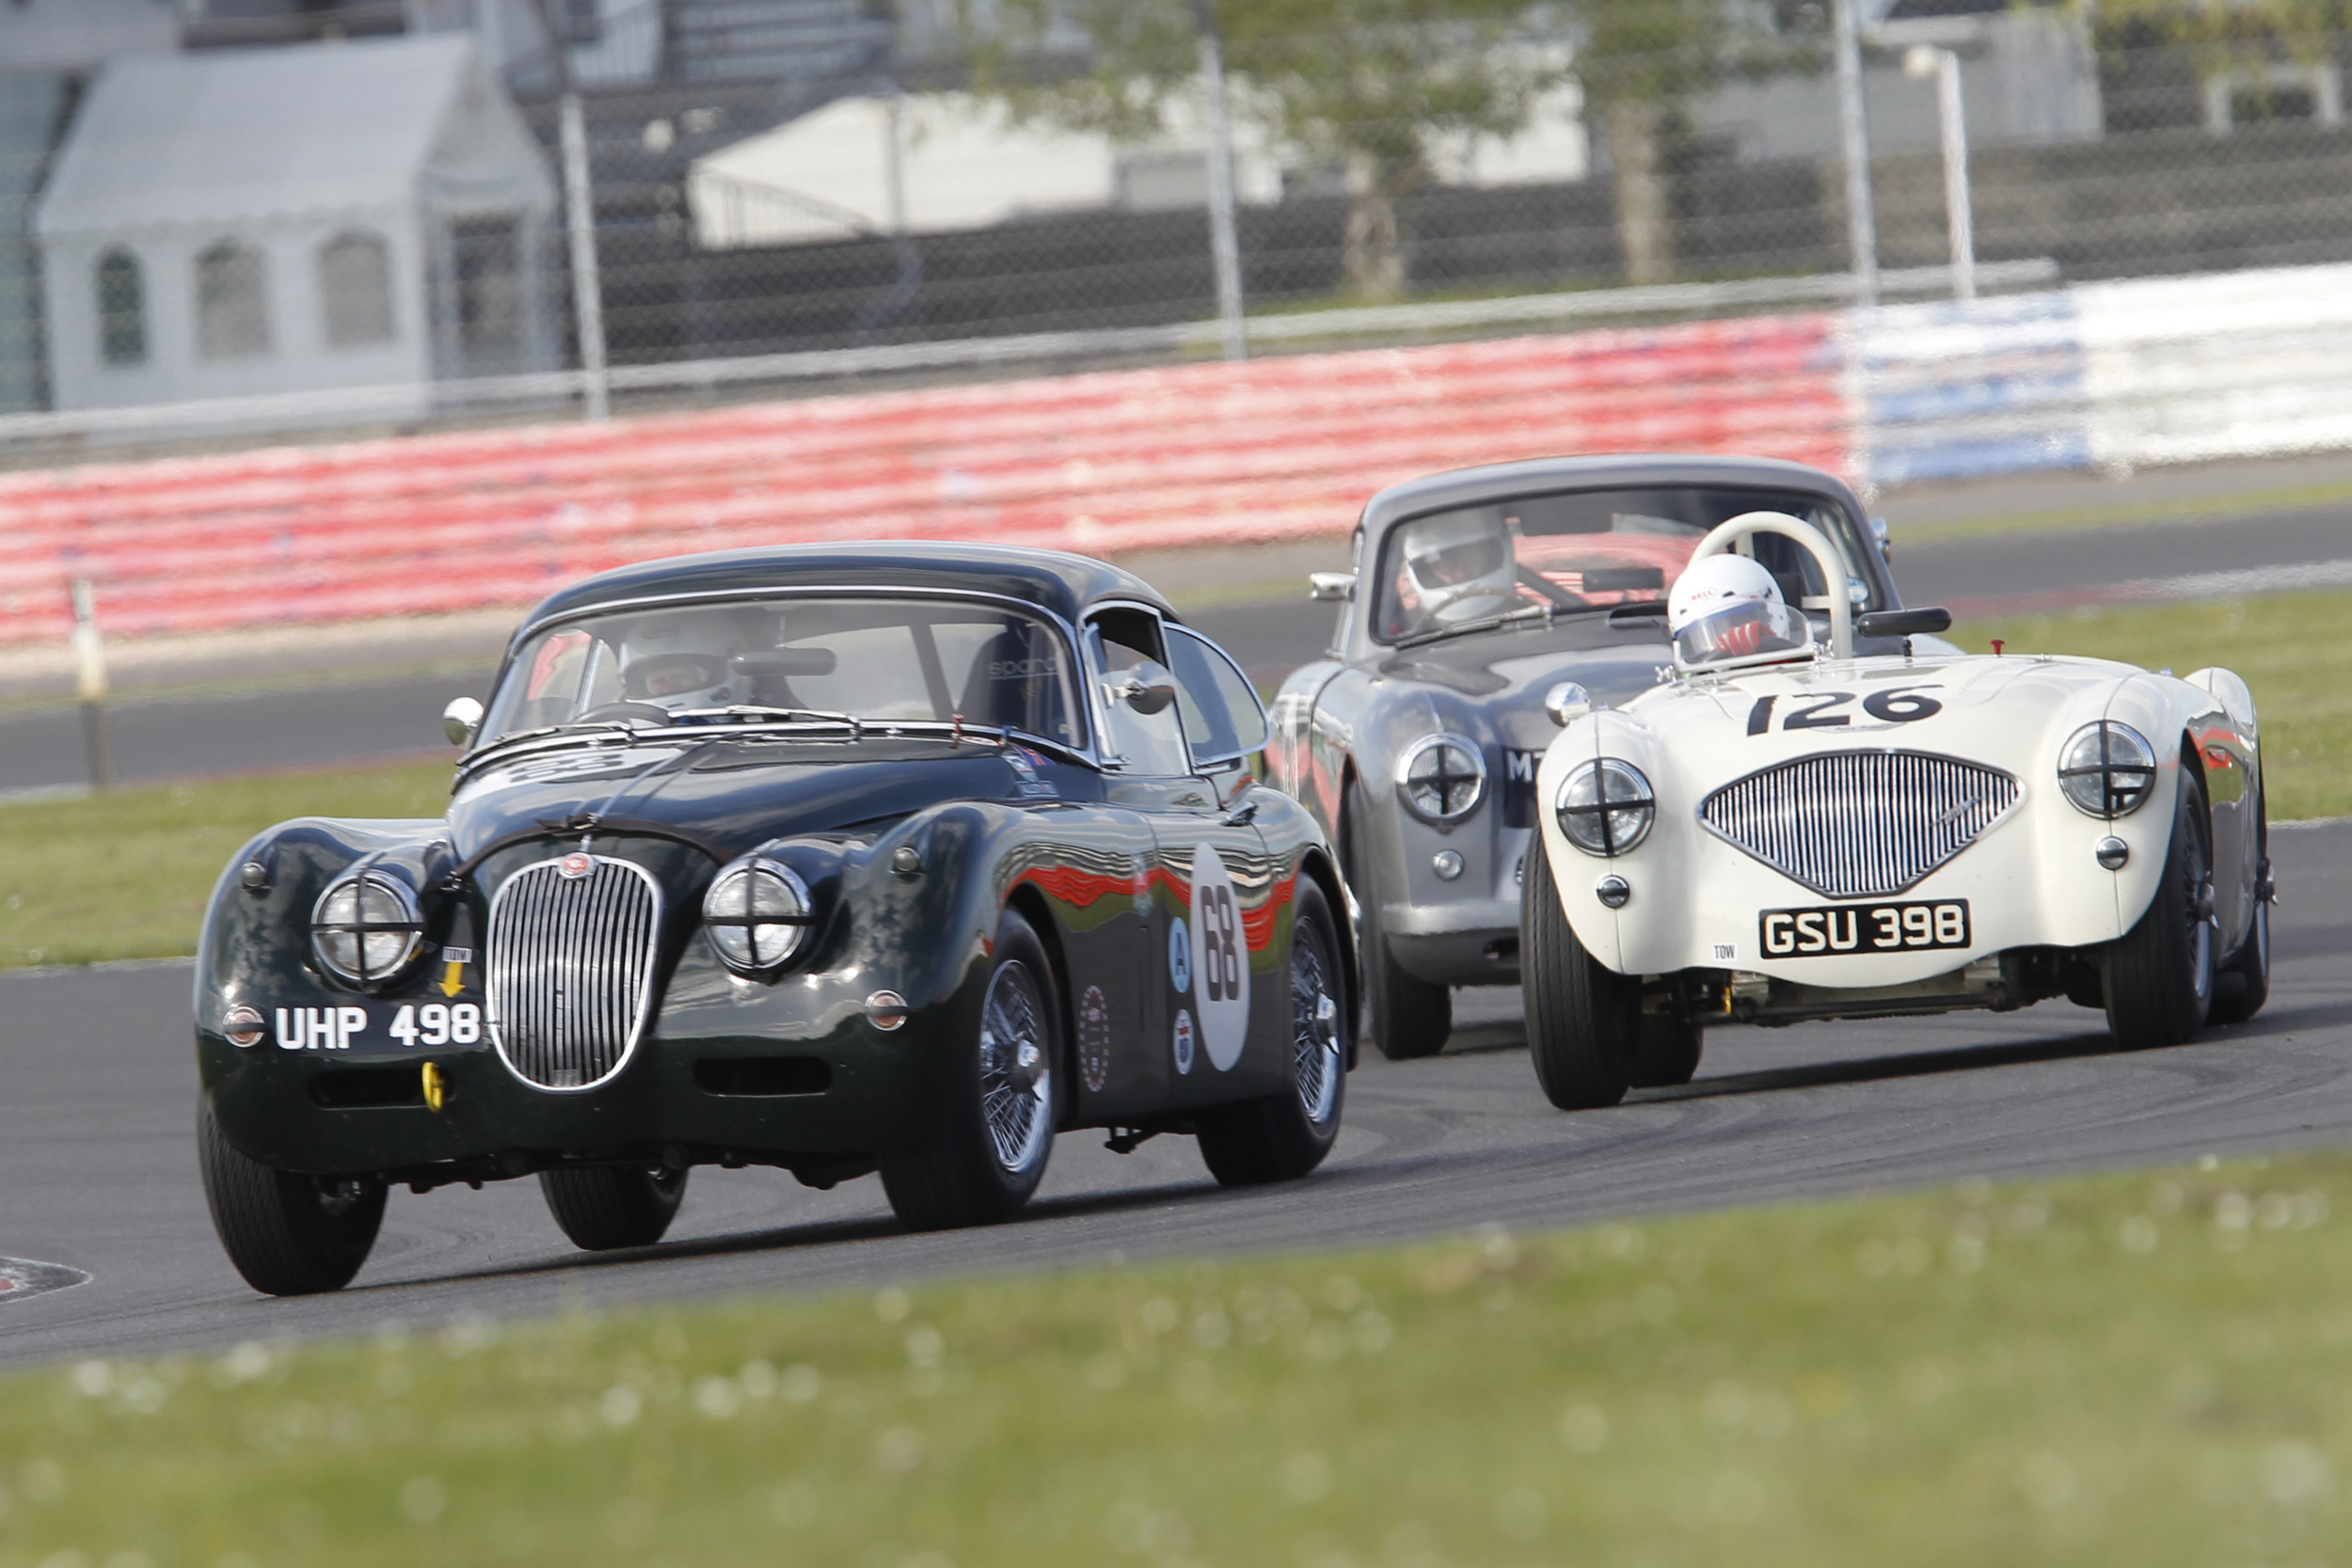 Classic 1950s Marques battle it out on the Silverstone GP Circuit. Marc Gordon (XK150), Nigel Grice (Austin Healey 100) and Tim Stamper (Aston Martin DB2/4) Photo - Mick Wa;lker